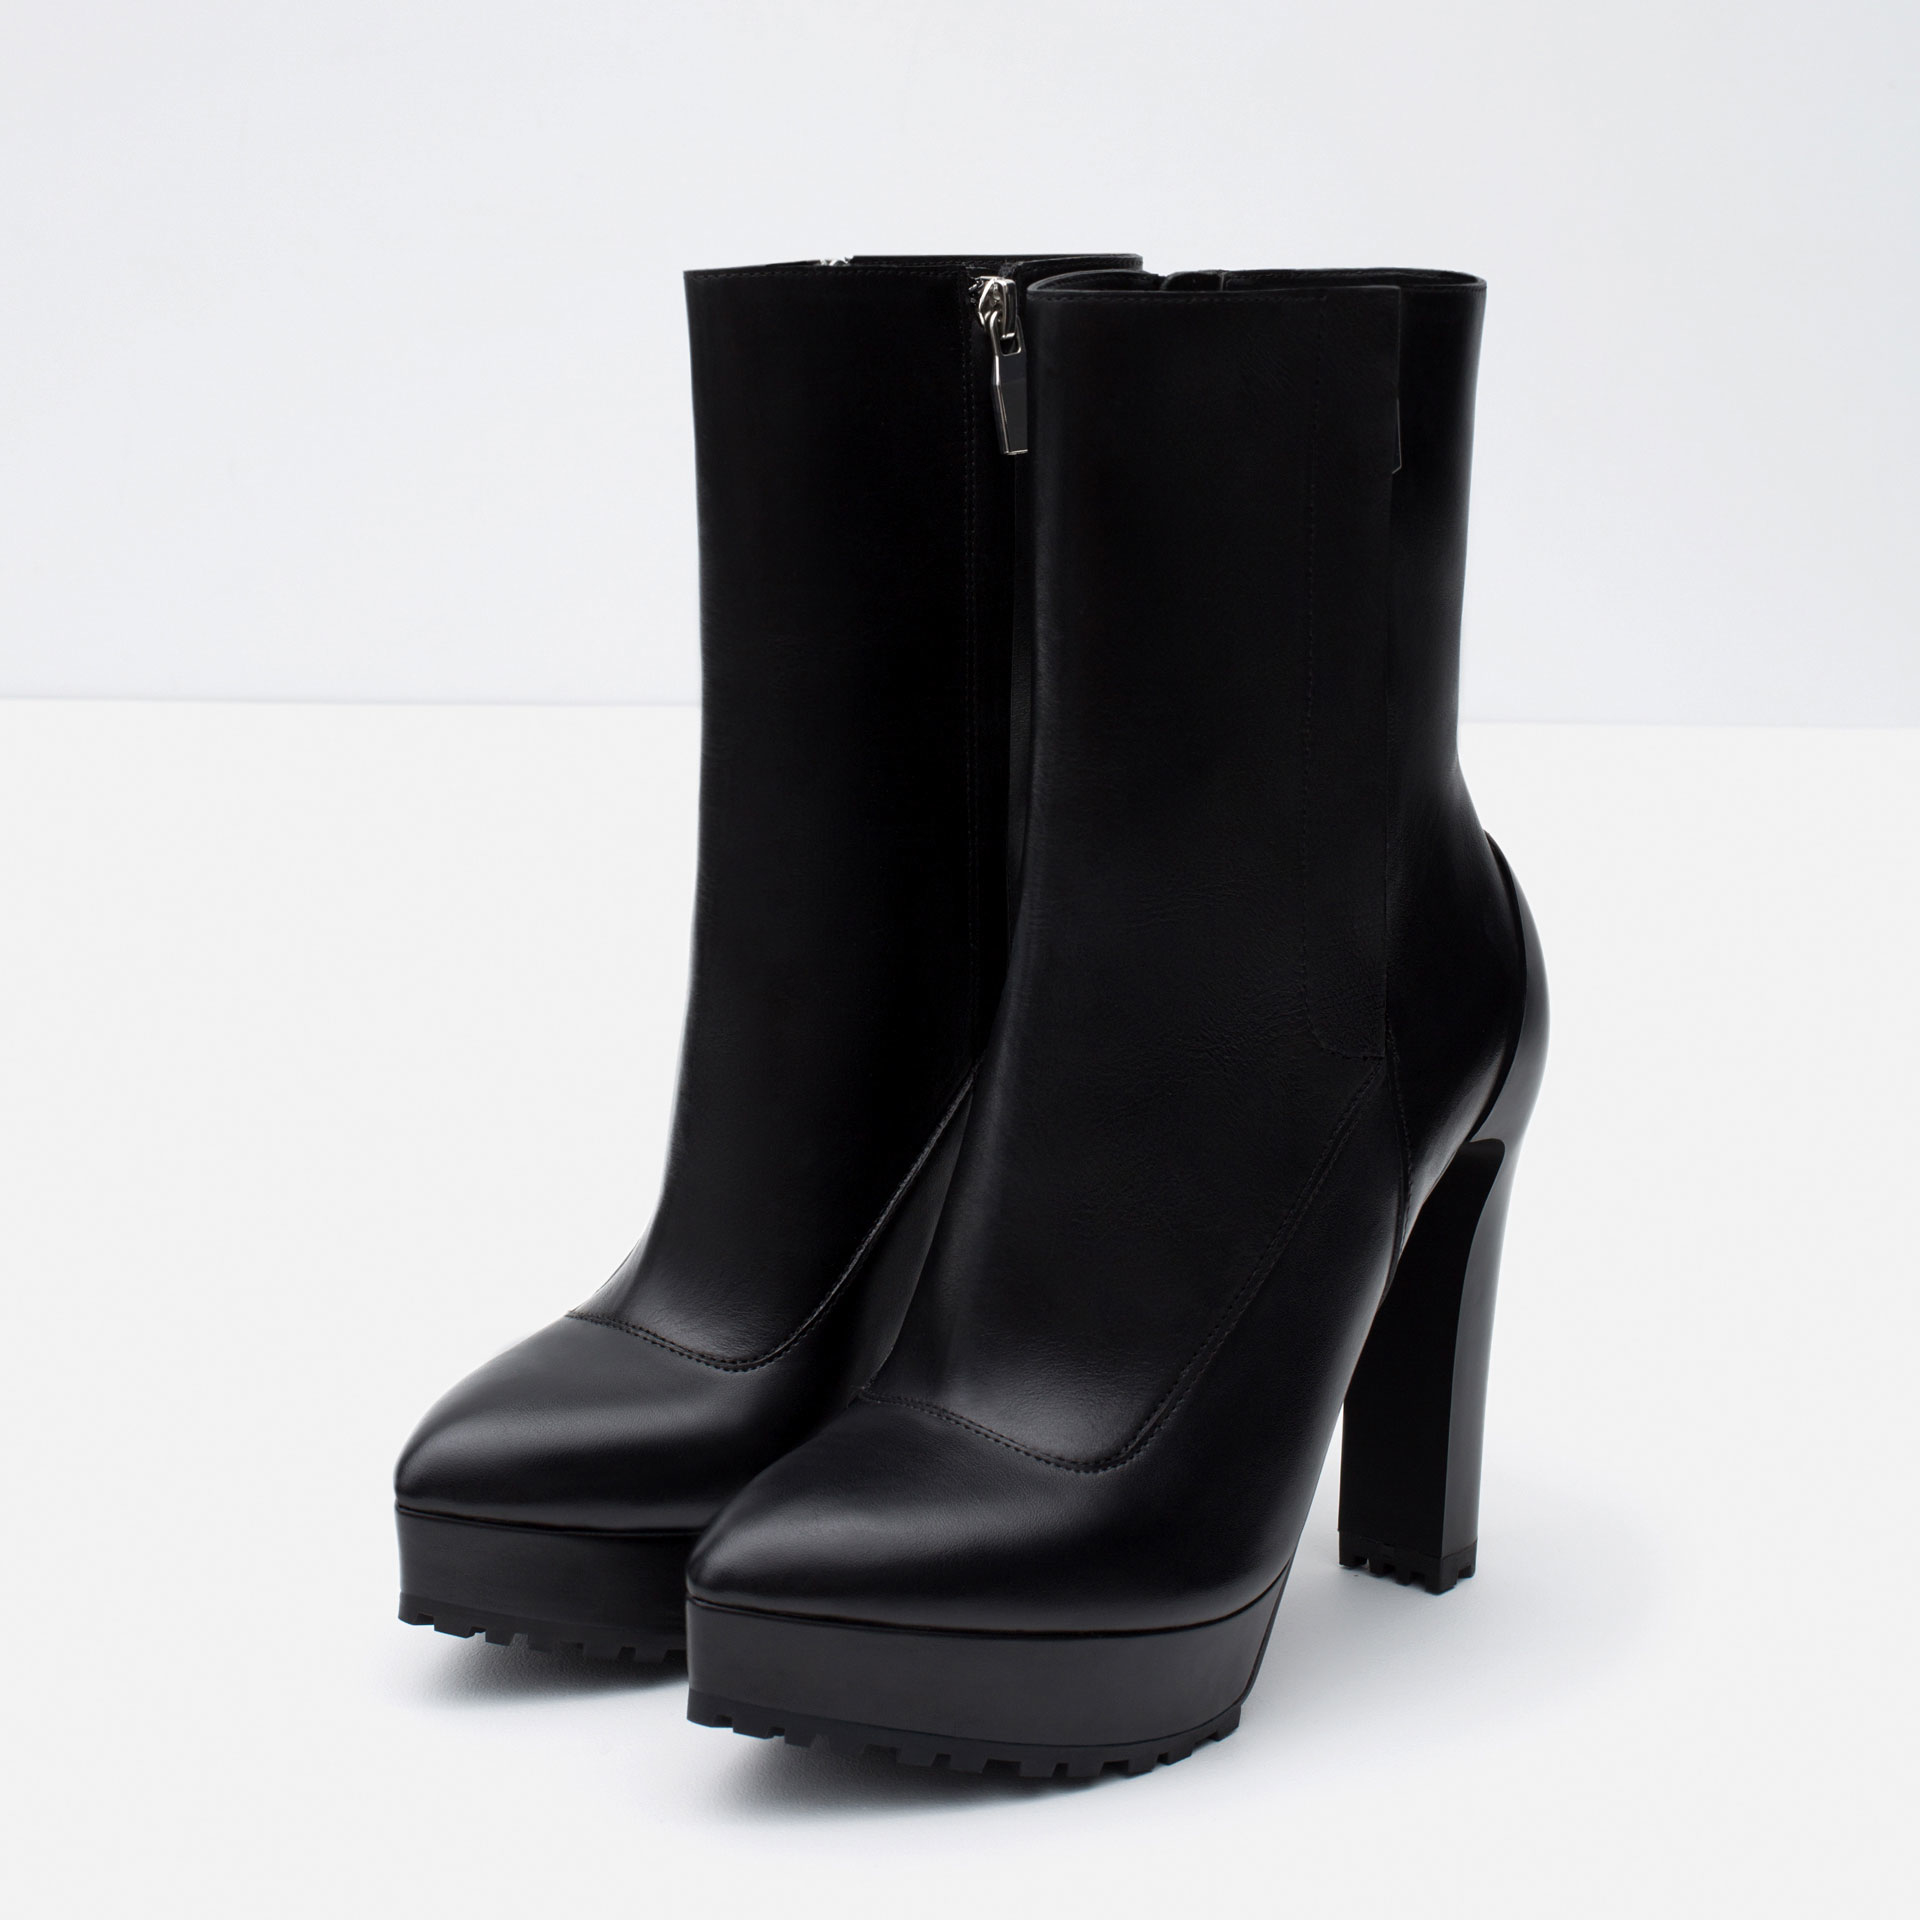 Zara High Heel Leather Ankle Boots in Black | Lyst